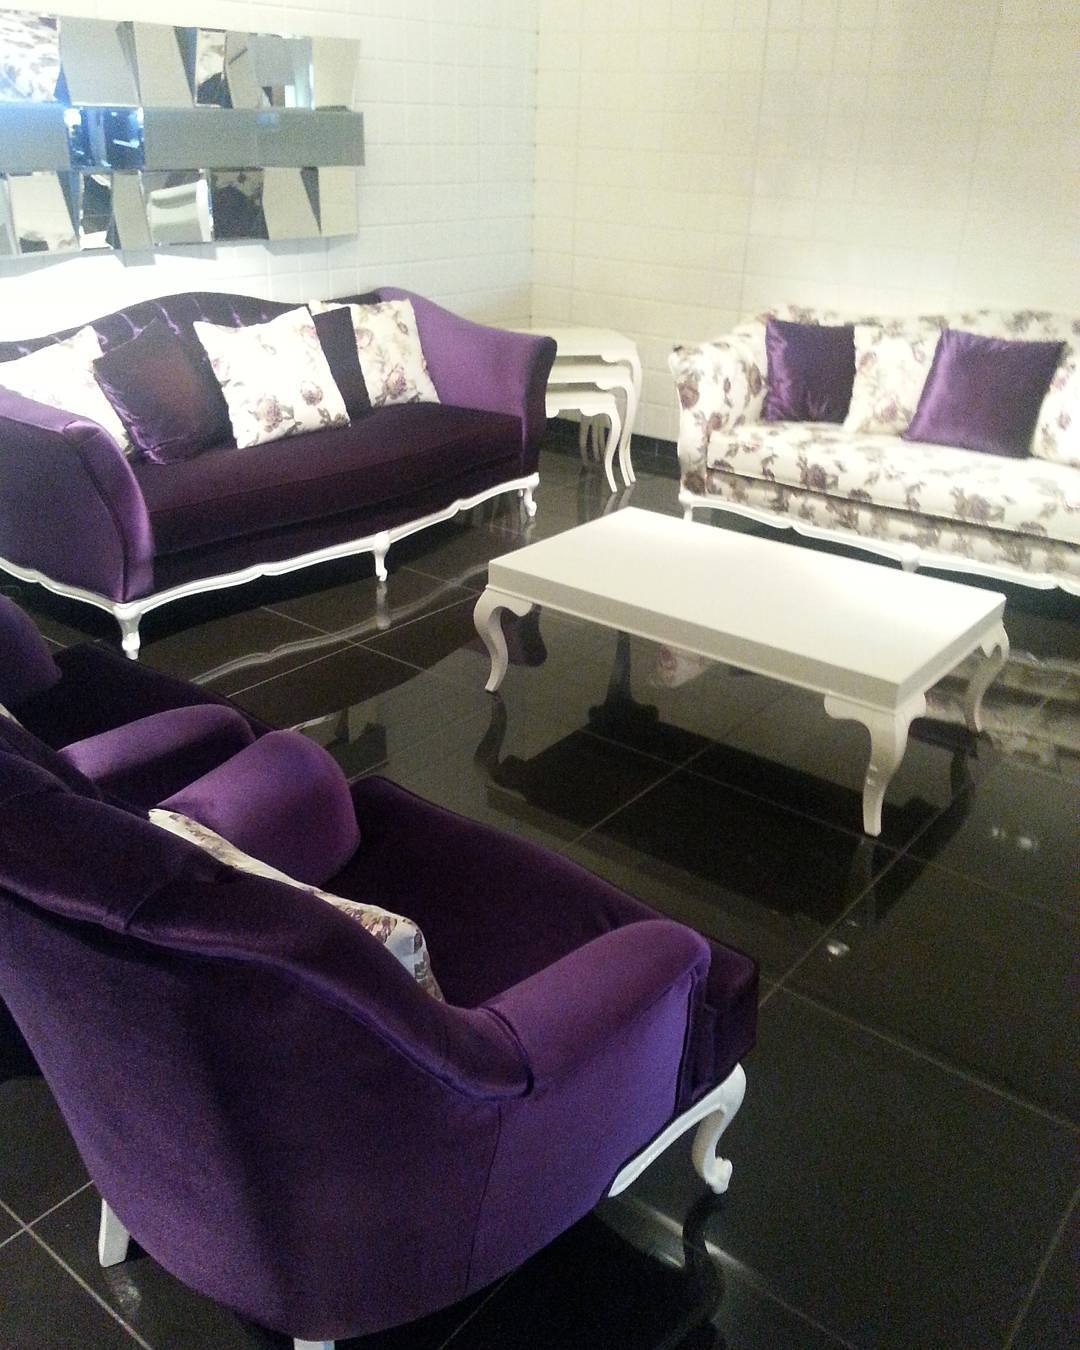 Decoration Samples with Lilac Armchairs 2020 (21)